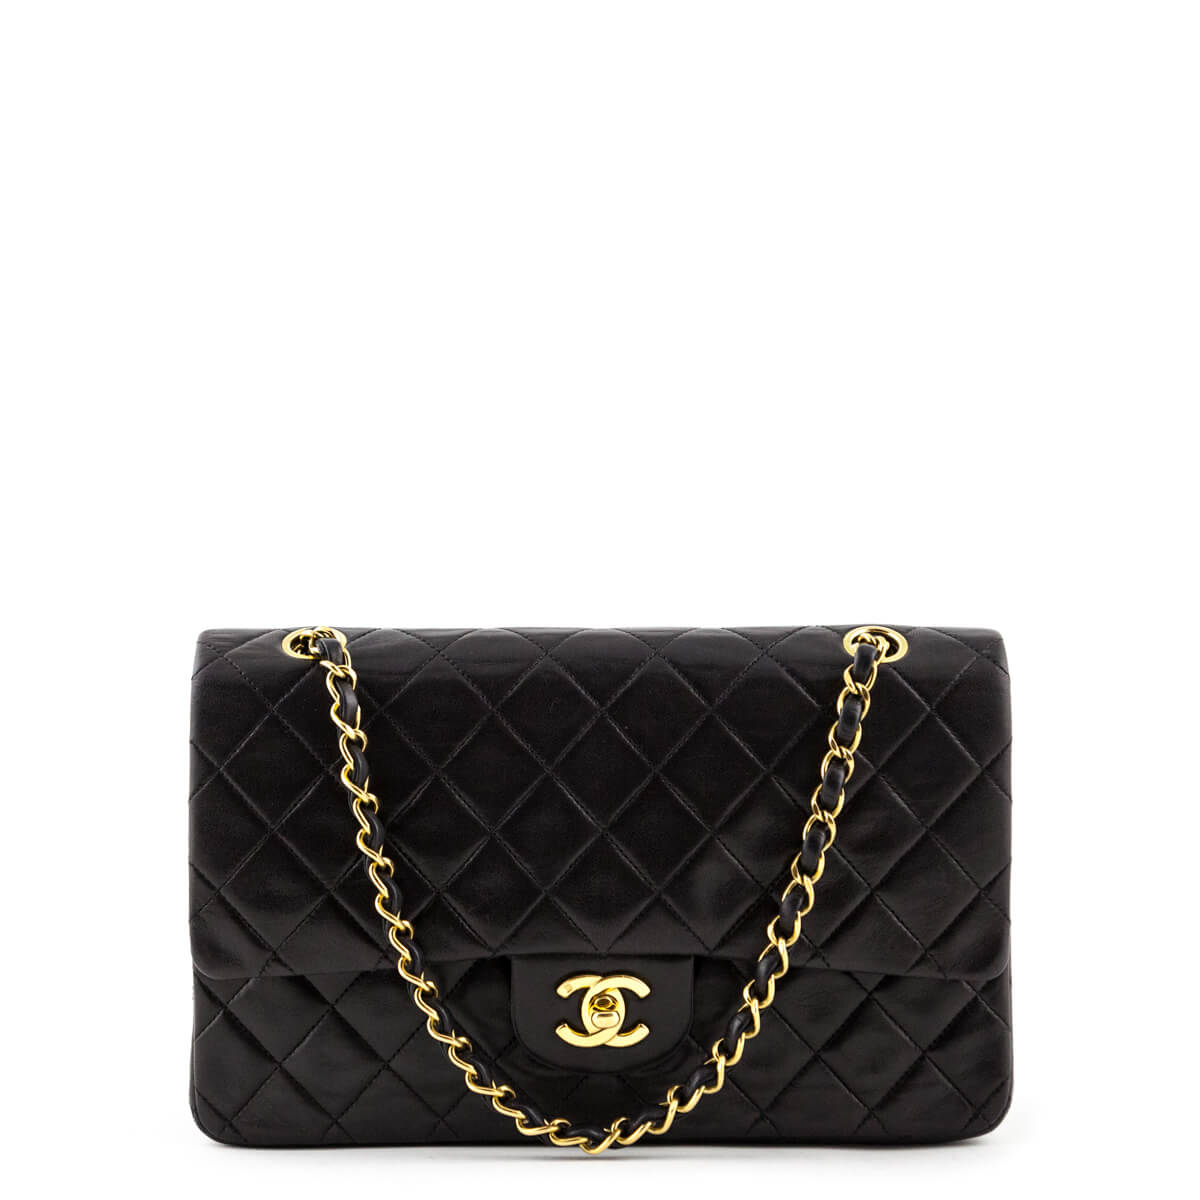 02db12ff2d4535 Chanel Black Lambskin Vintage Medium Classic Double Flap - LOVE that BAG -  Preowned Authentic Designer ...